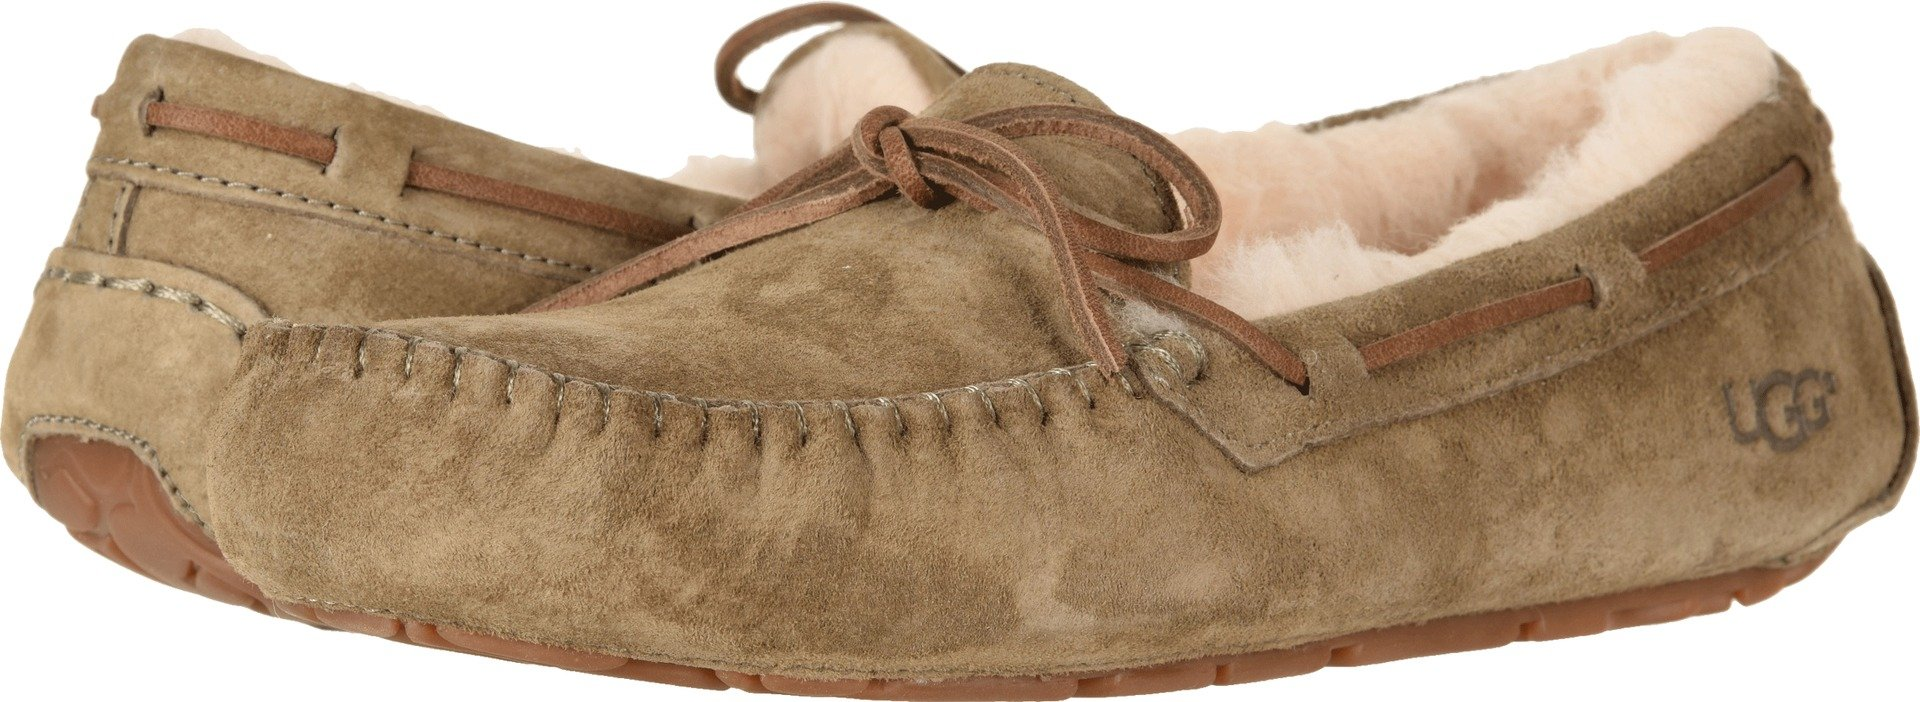 UGG Women's W Dakota Slipper, Antilope, 9 M US